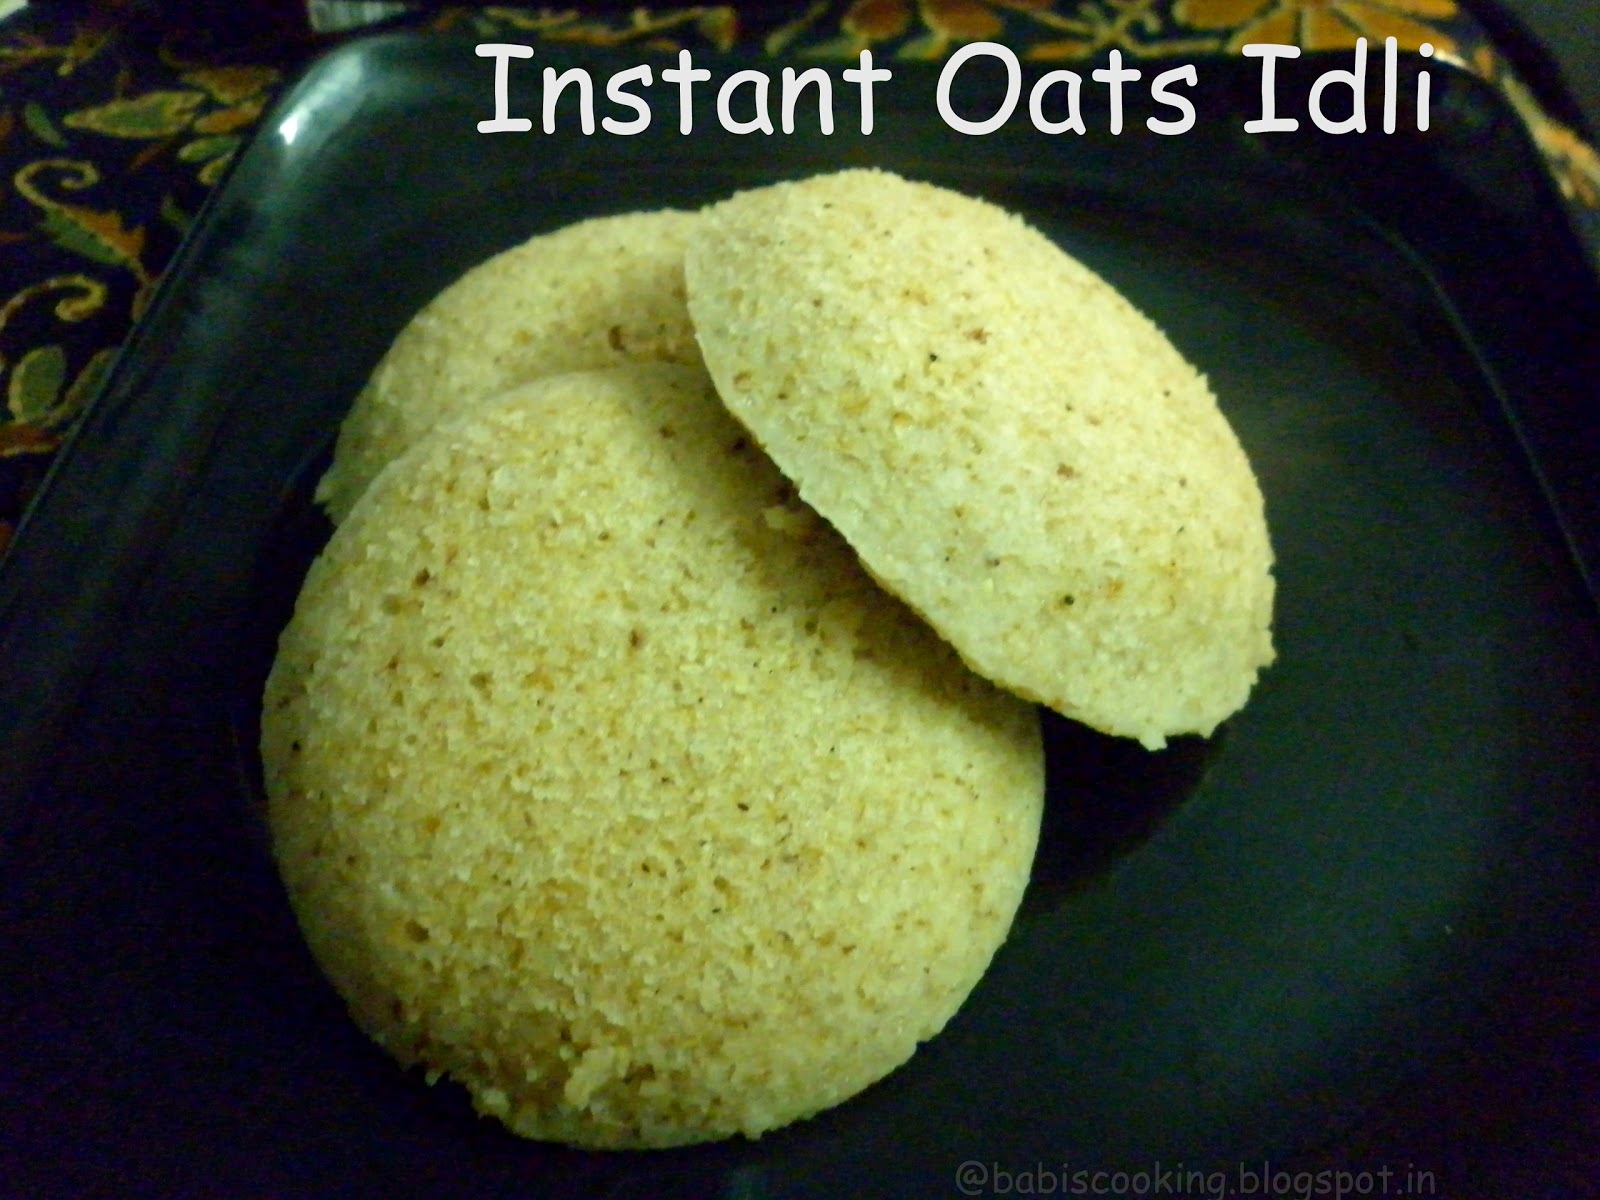 Instant Oats Idli- Easy Breakfast